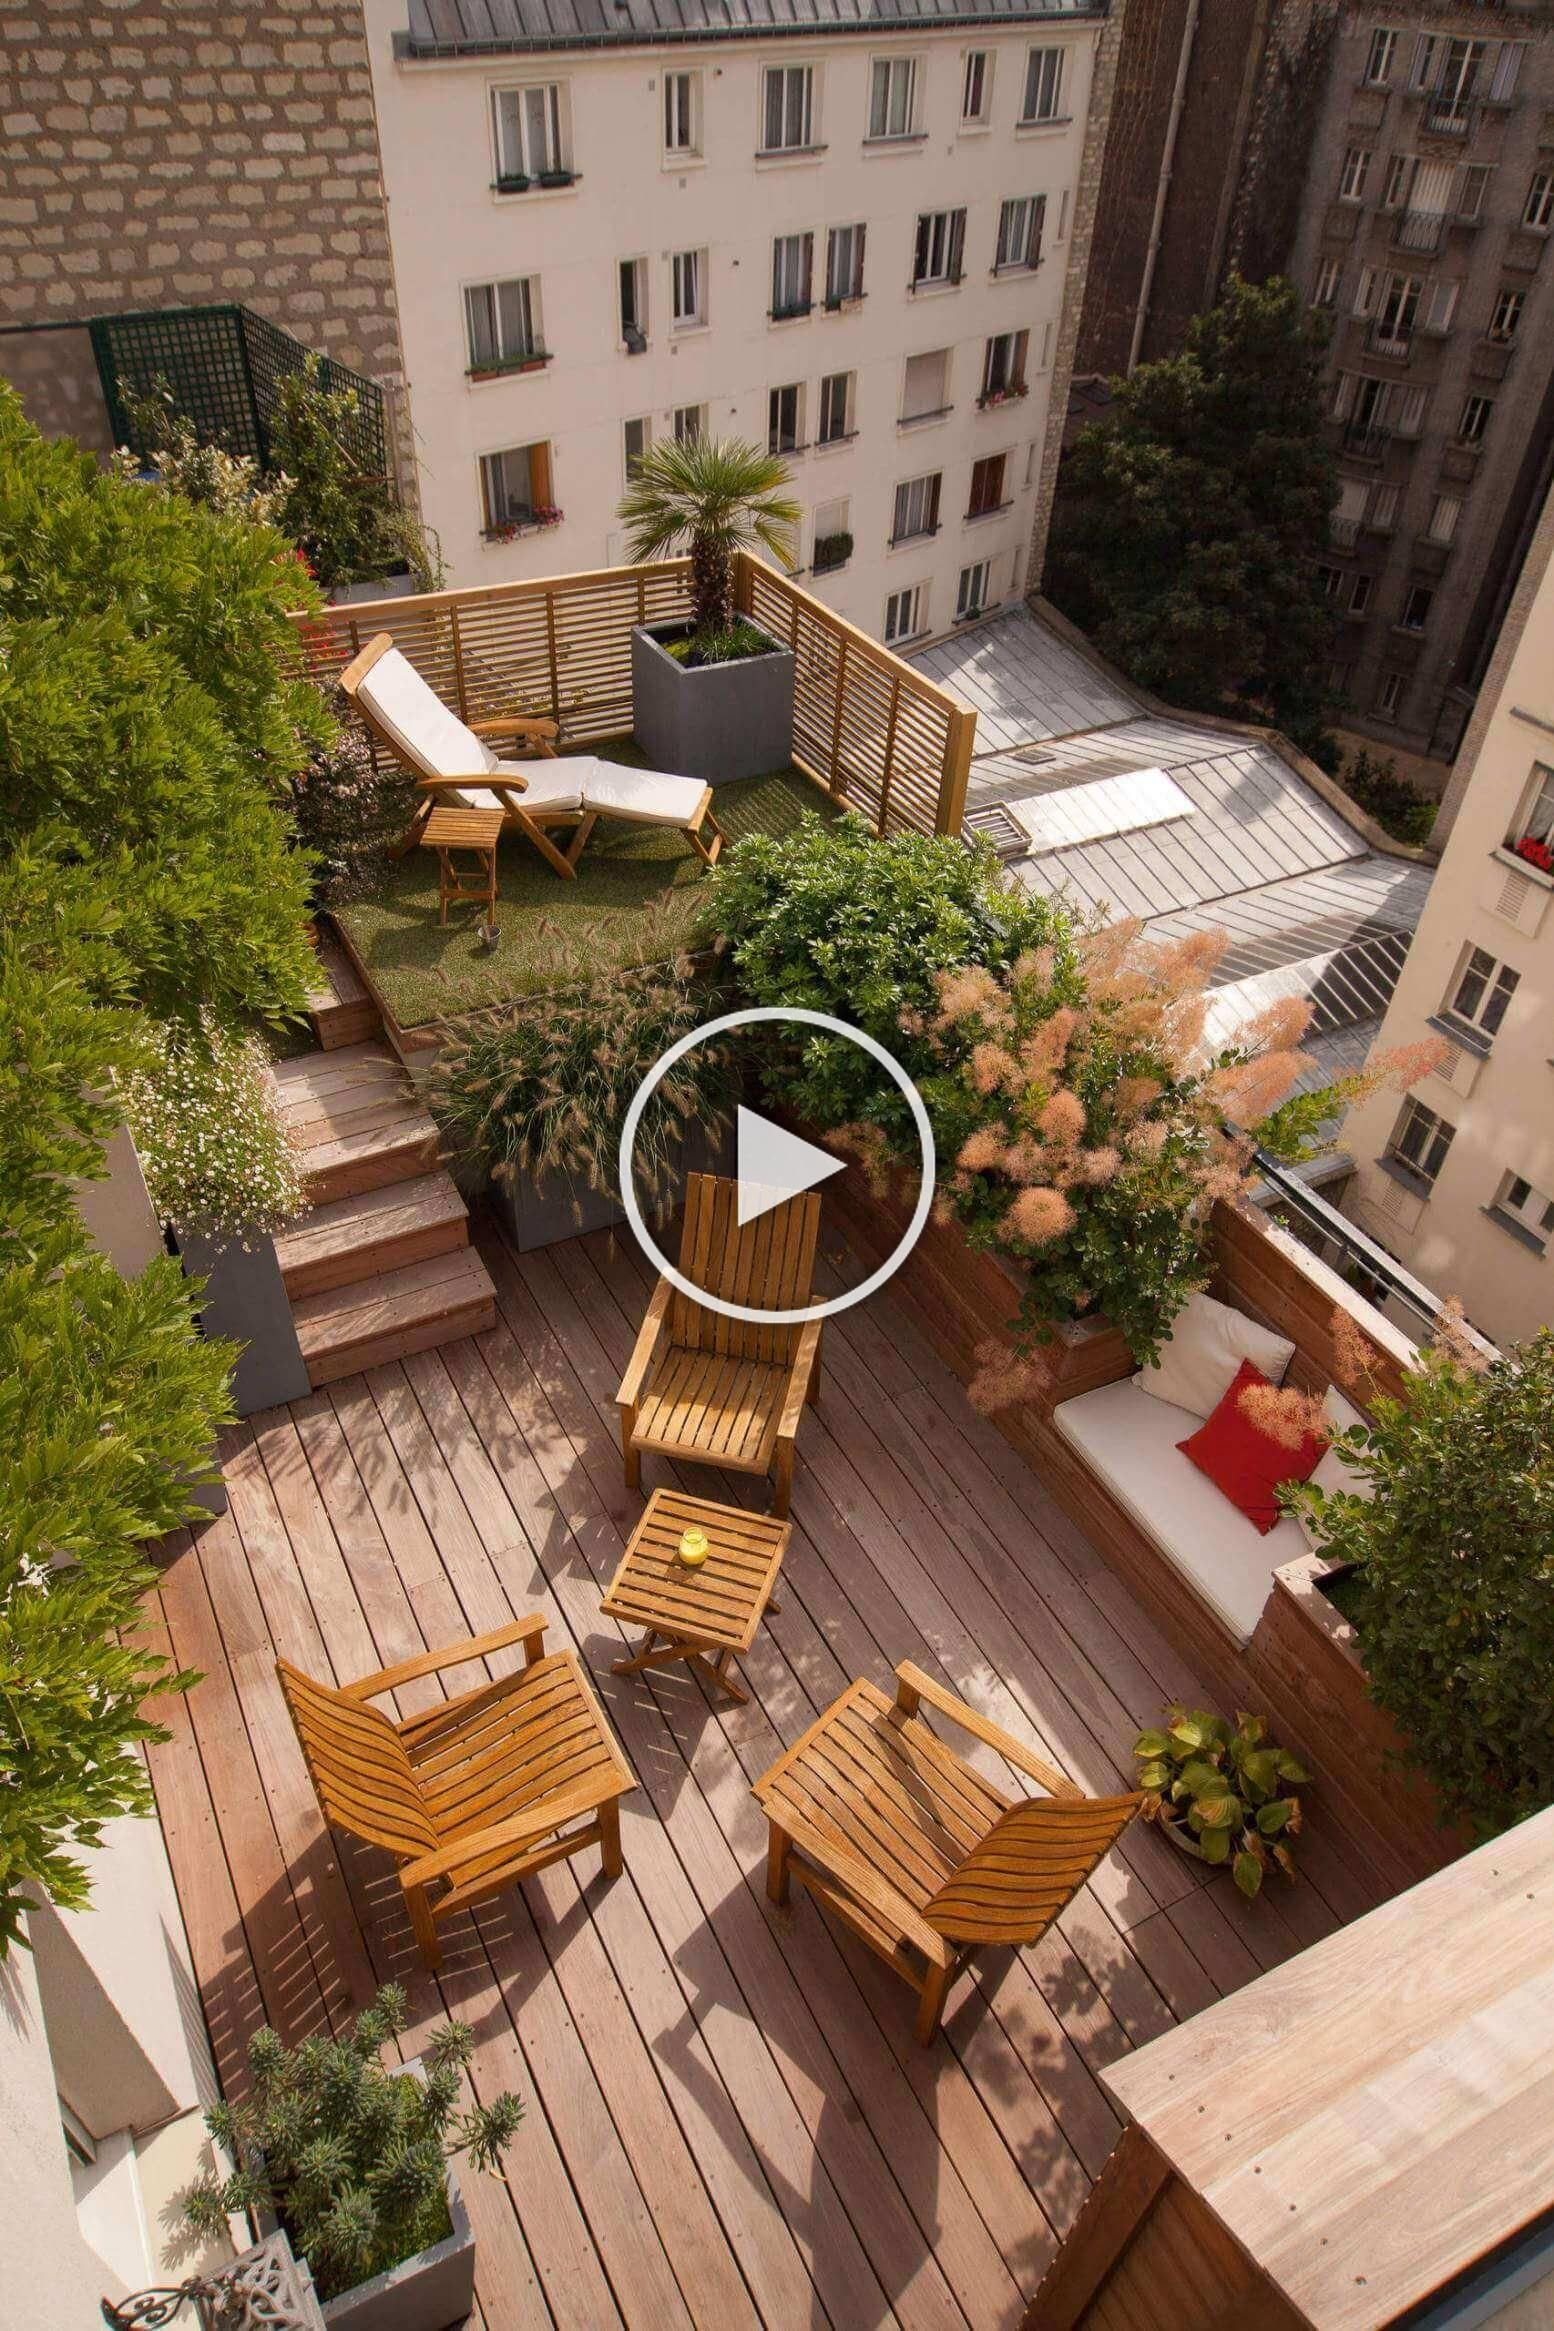 Either You Are Working With A Small Space Or You Need A High Deck Or A Second S Deck High Small Spa In 2020 Roof Terrace Design Balcony Decor Roof Garden Design